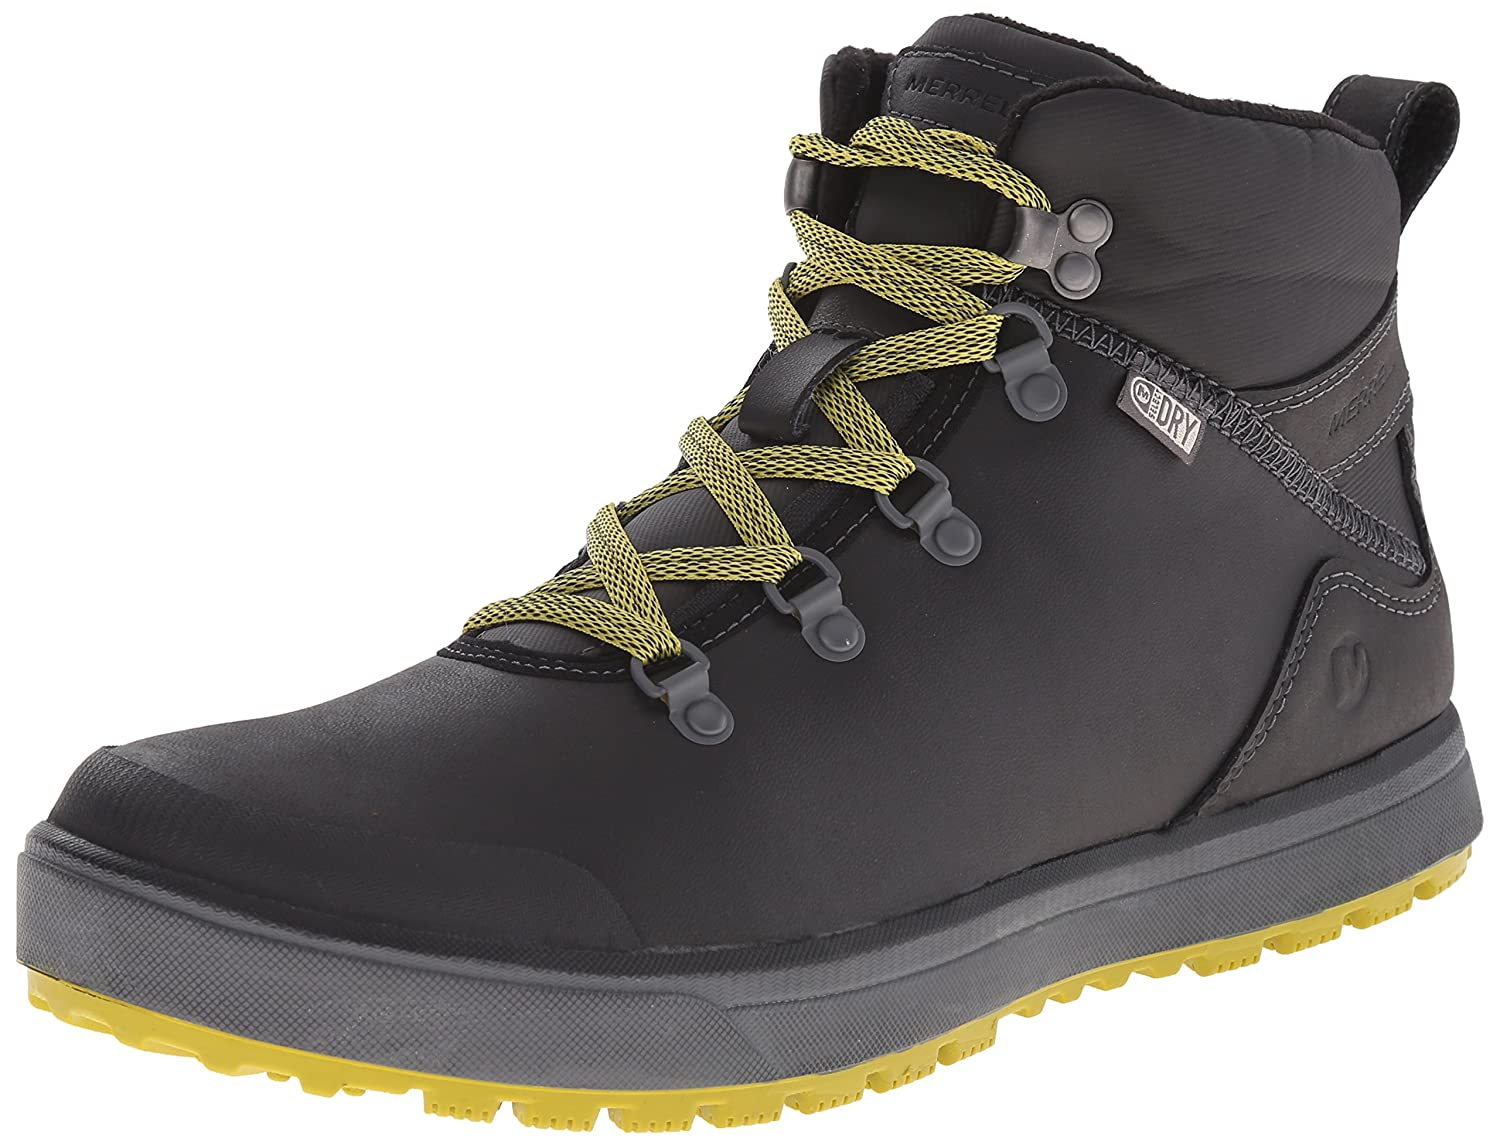 Merrell Herren Turku Trek WTPF High-Top